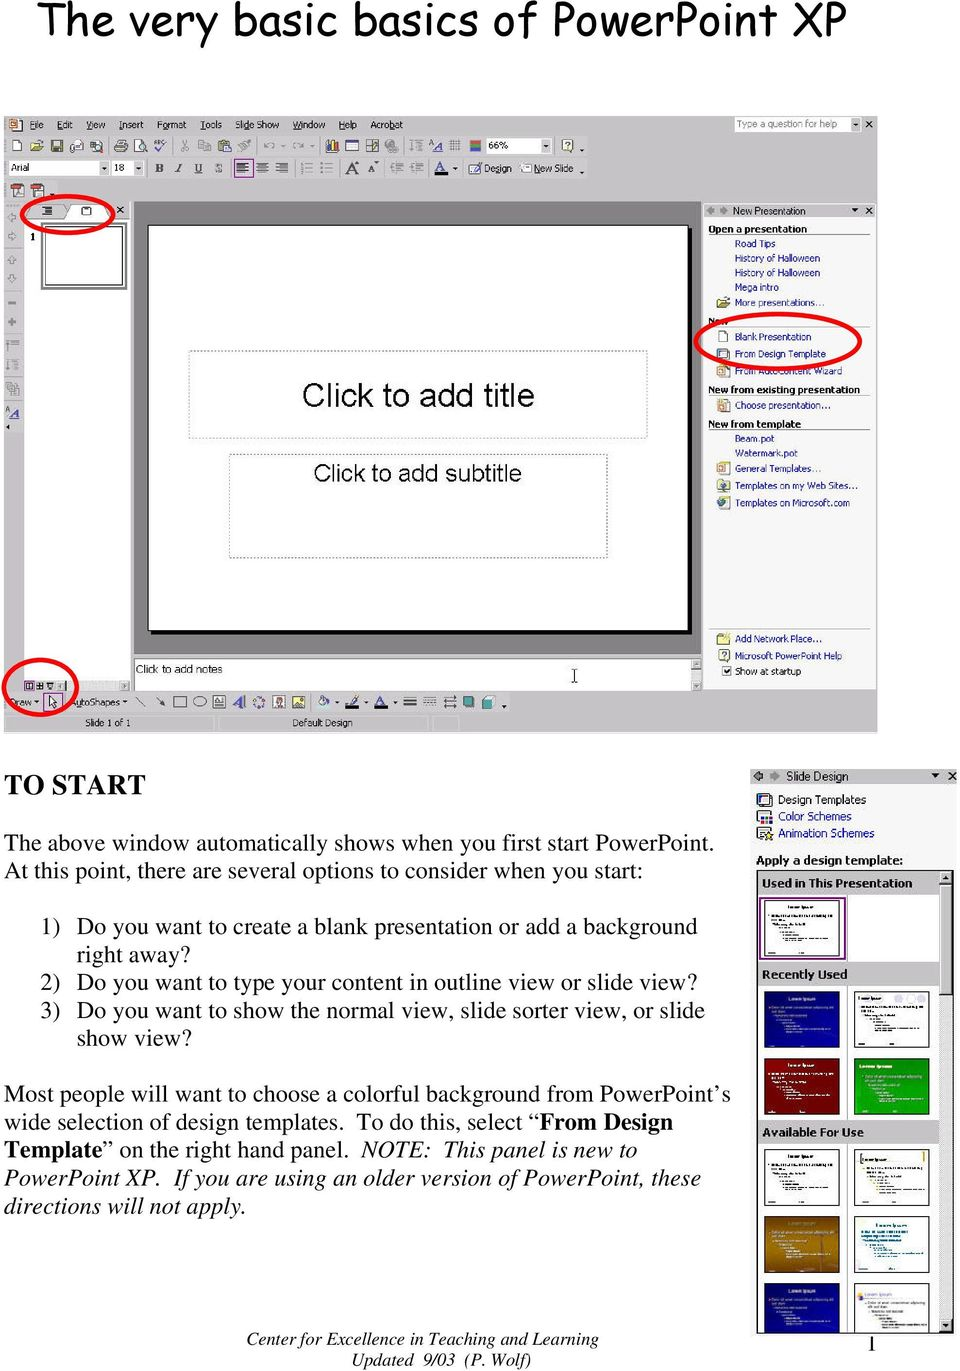 2) Do you want to type your content in outline view or slide view? 3) Do you want to show the normal view, slide sorter view, or slide show view?